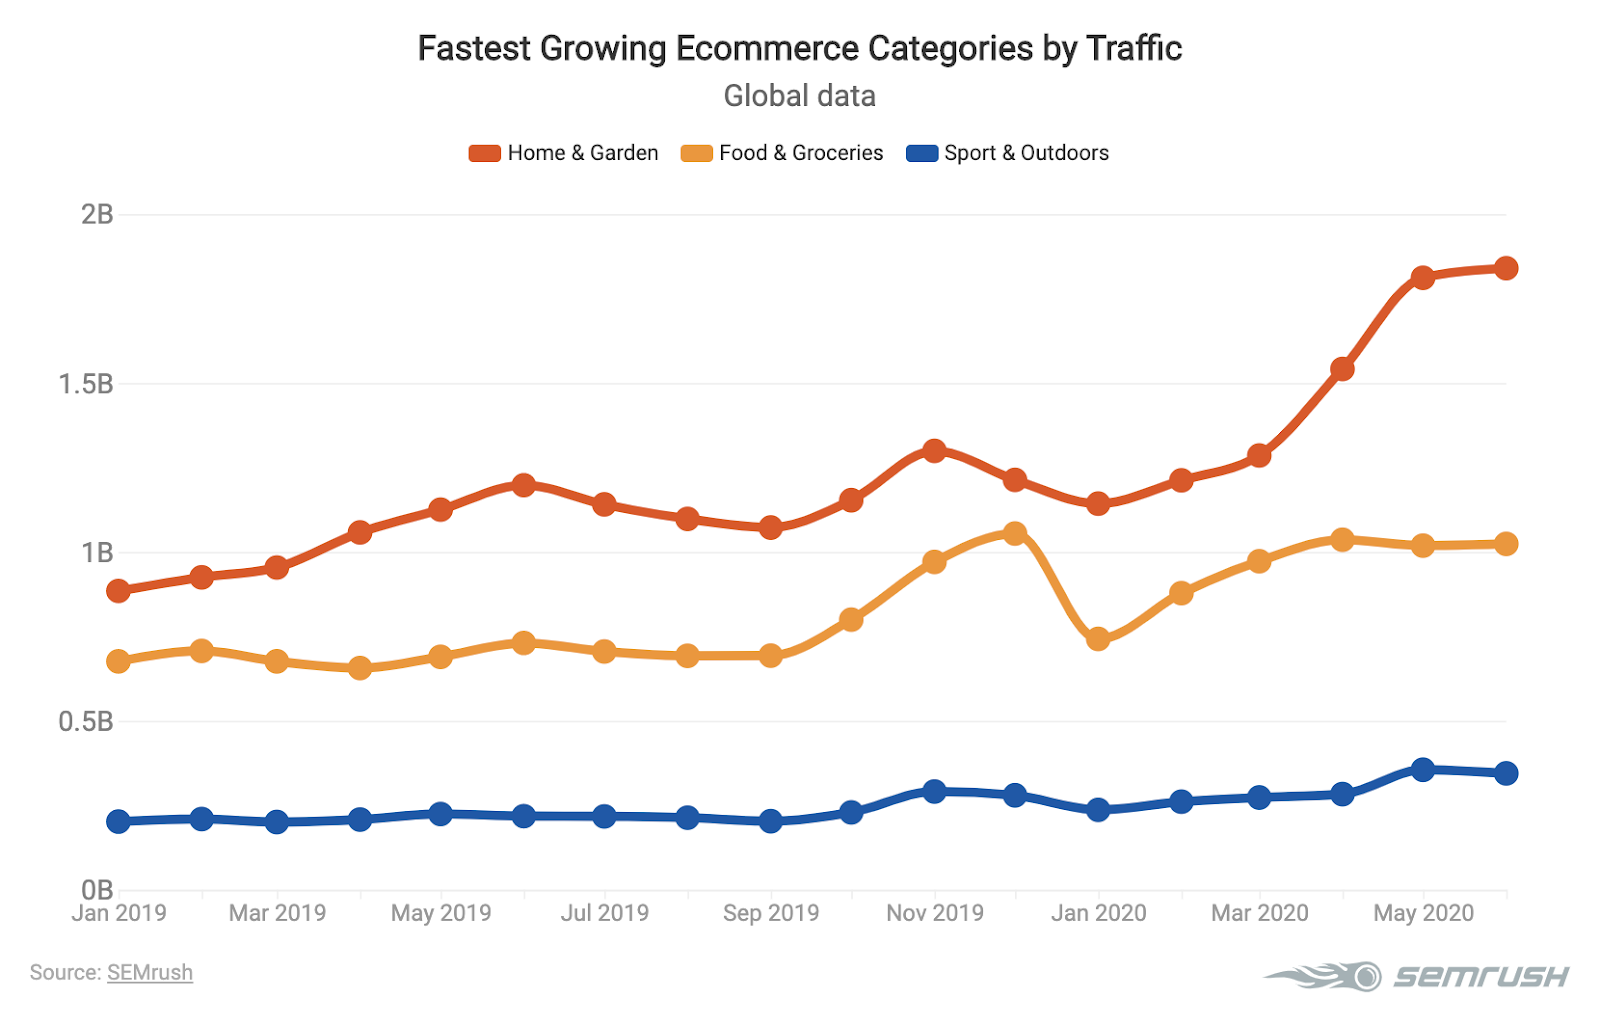 Graphic showing fastest growing ecommerce categories by traffic